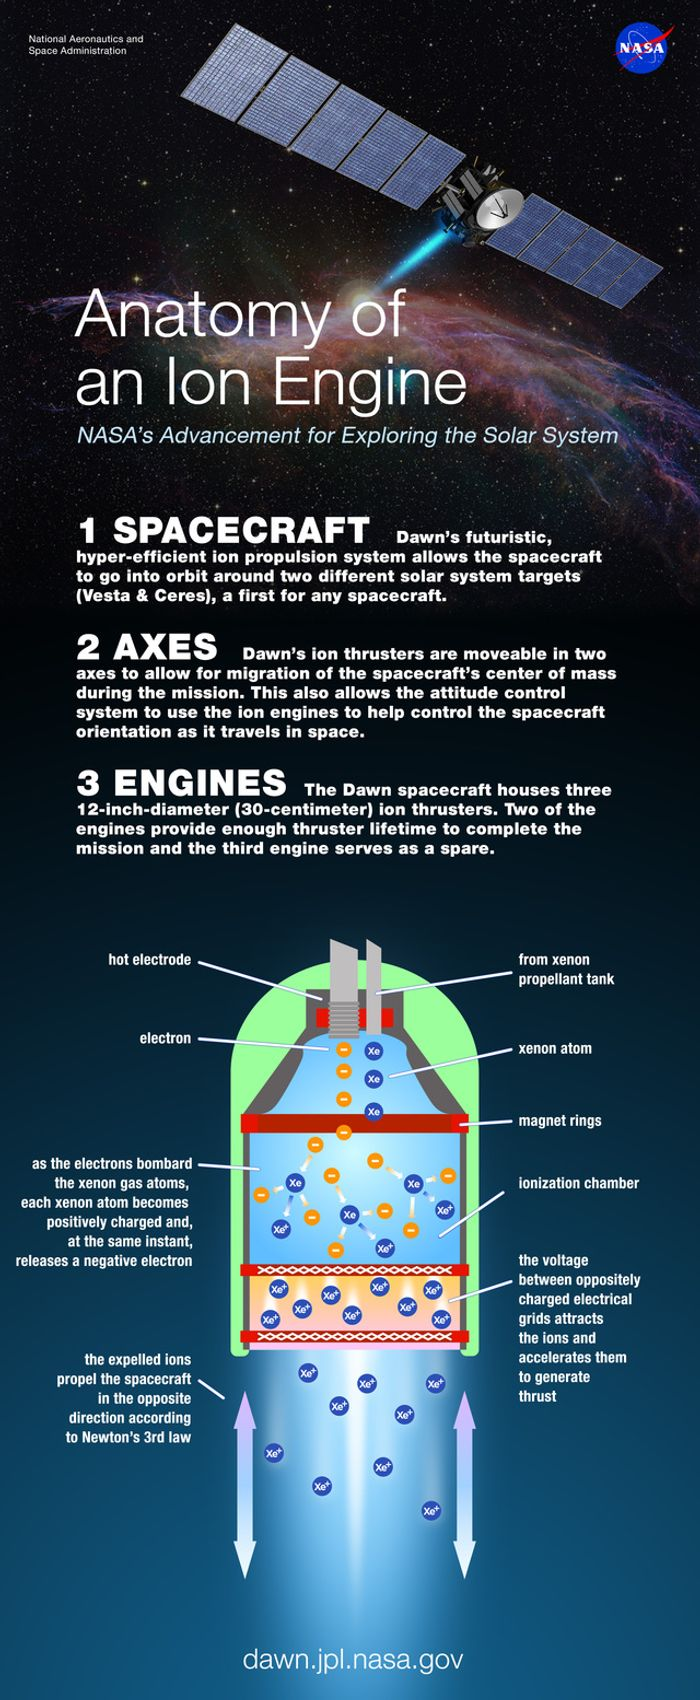 How does and ion engine, like the one on NASA's Dawn probe work?